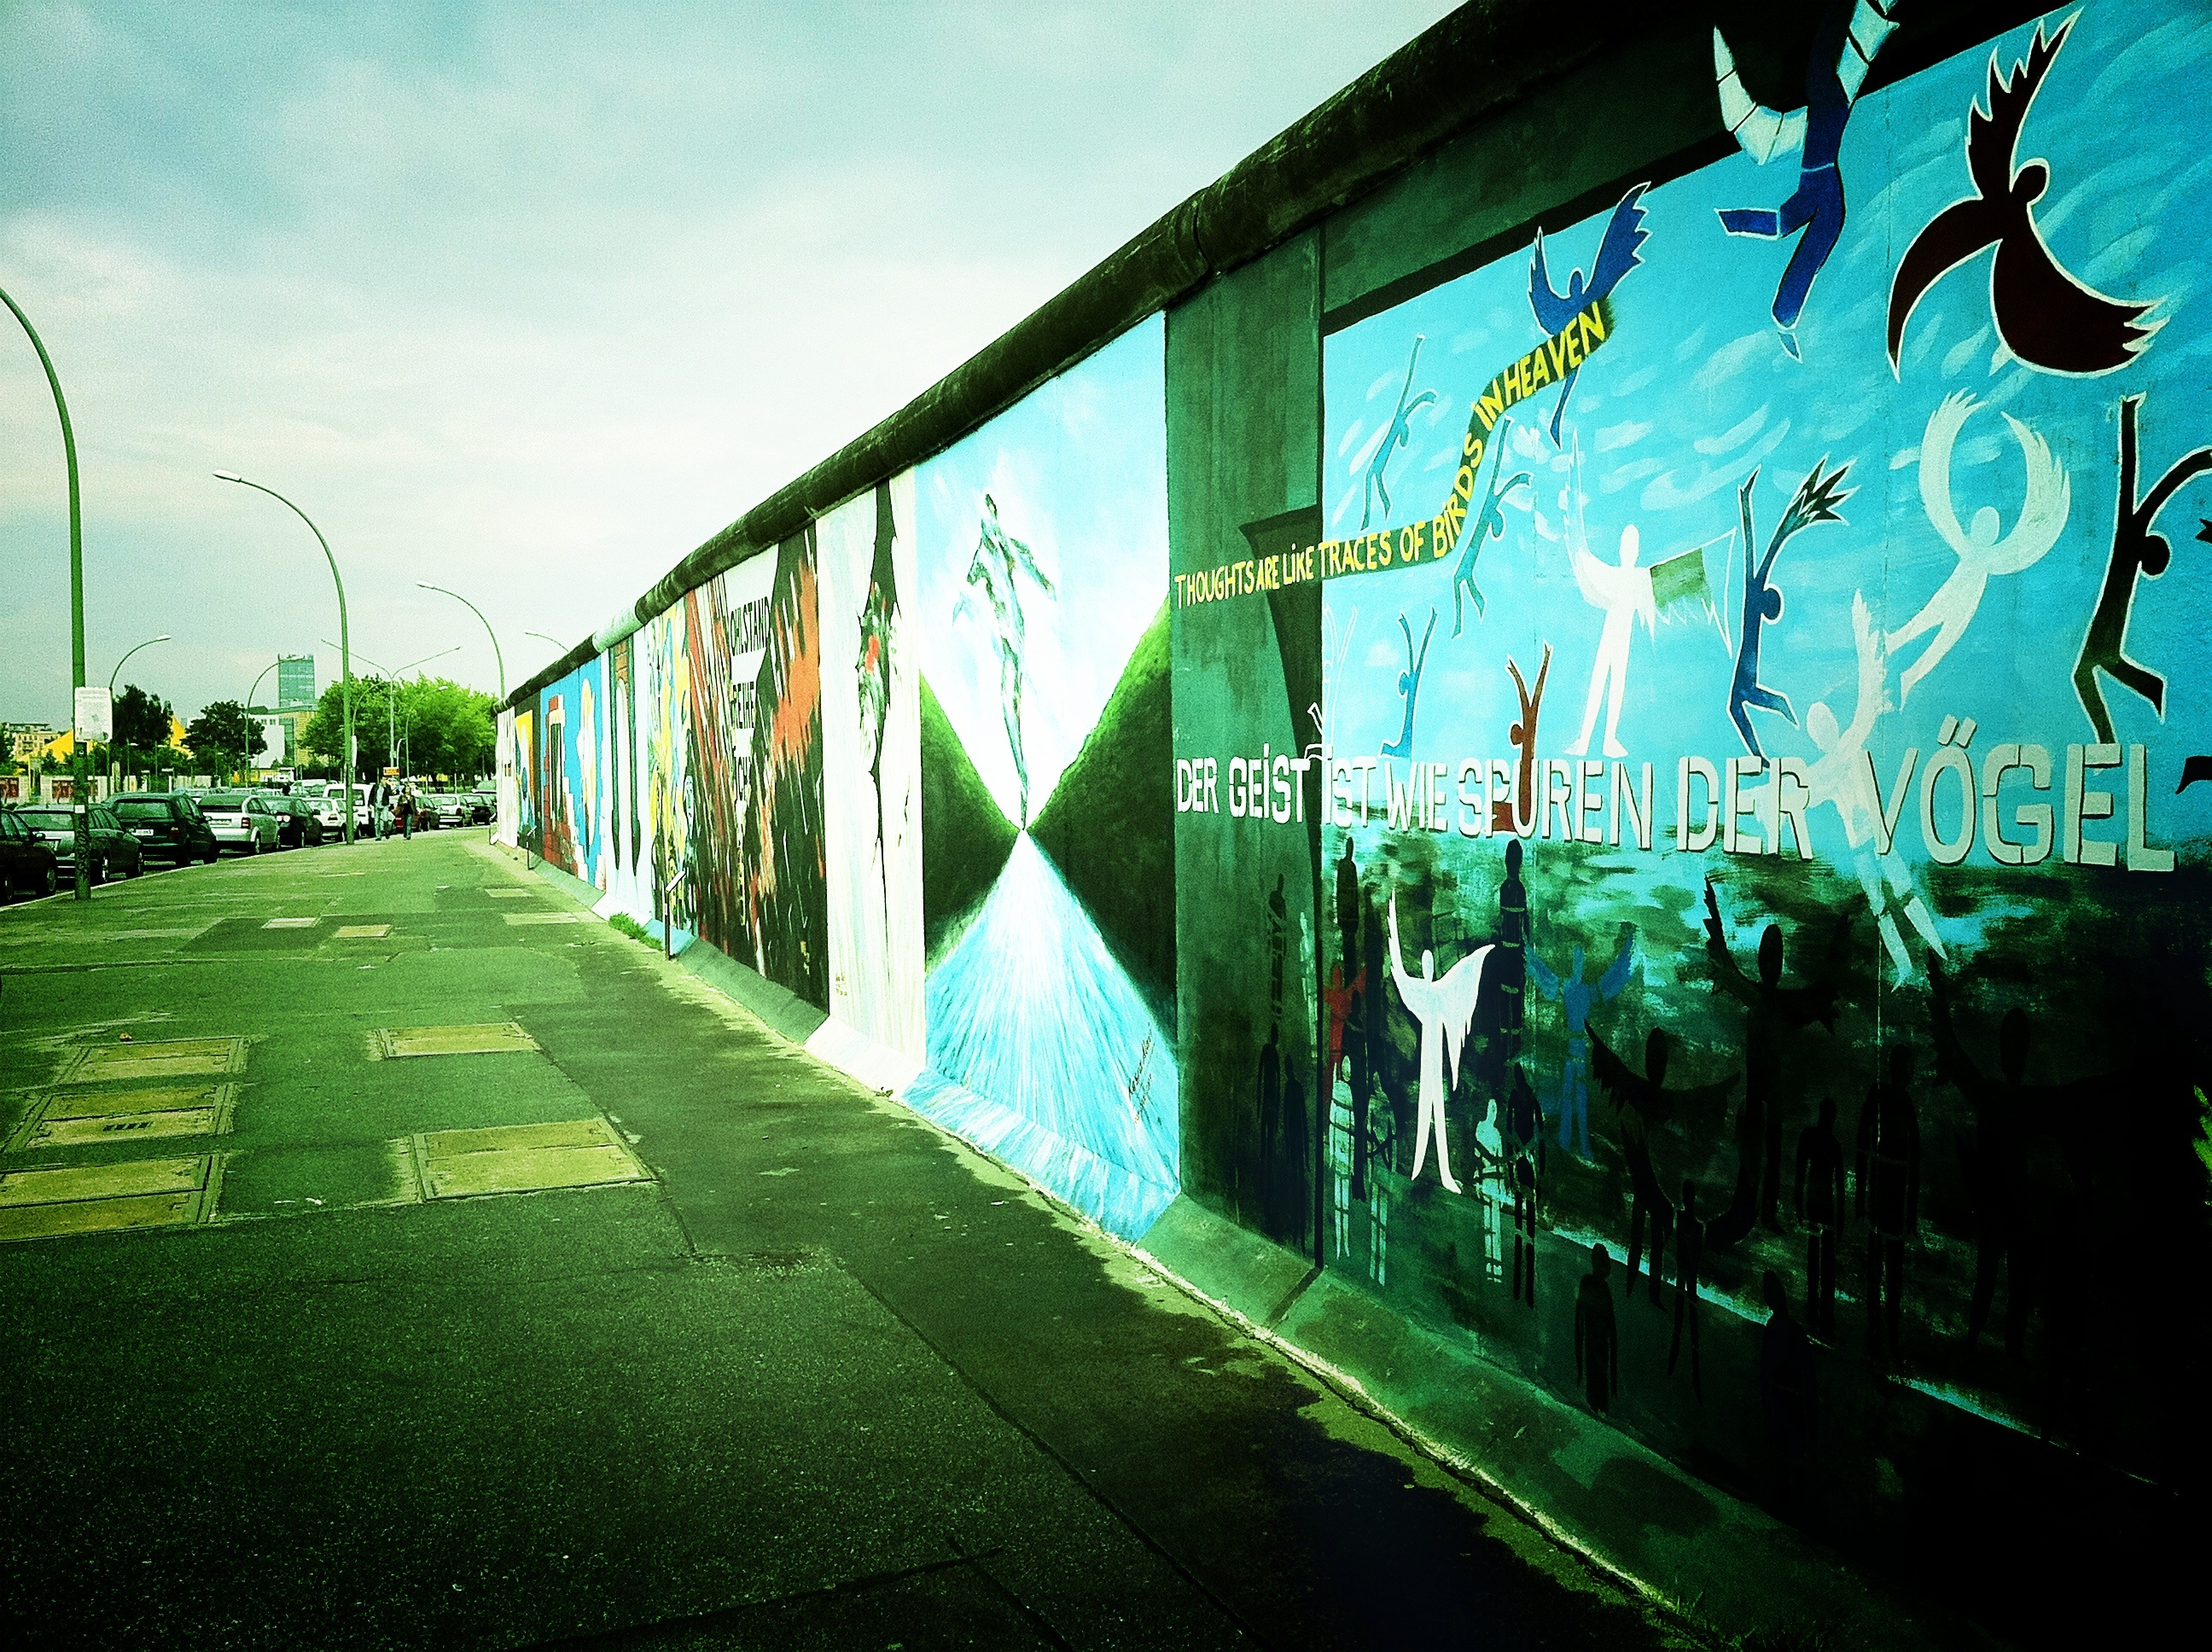 A photograph of graffiti on the western side of the Berlin wall.